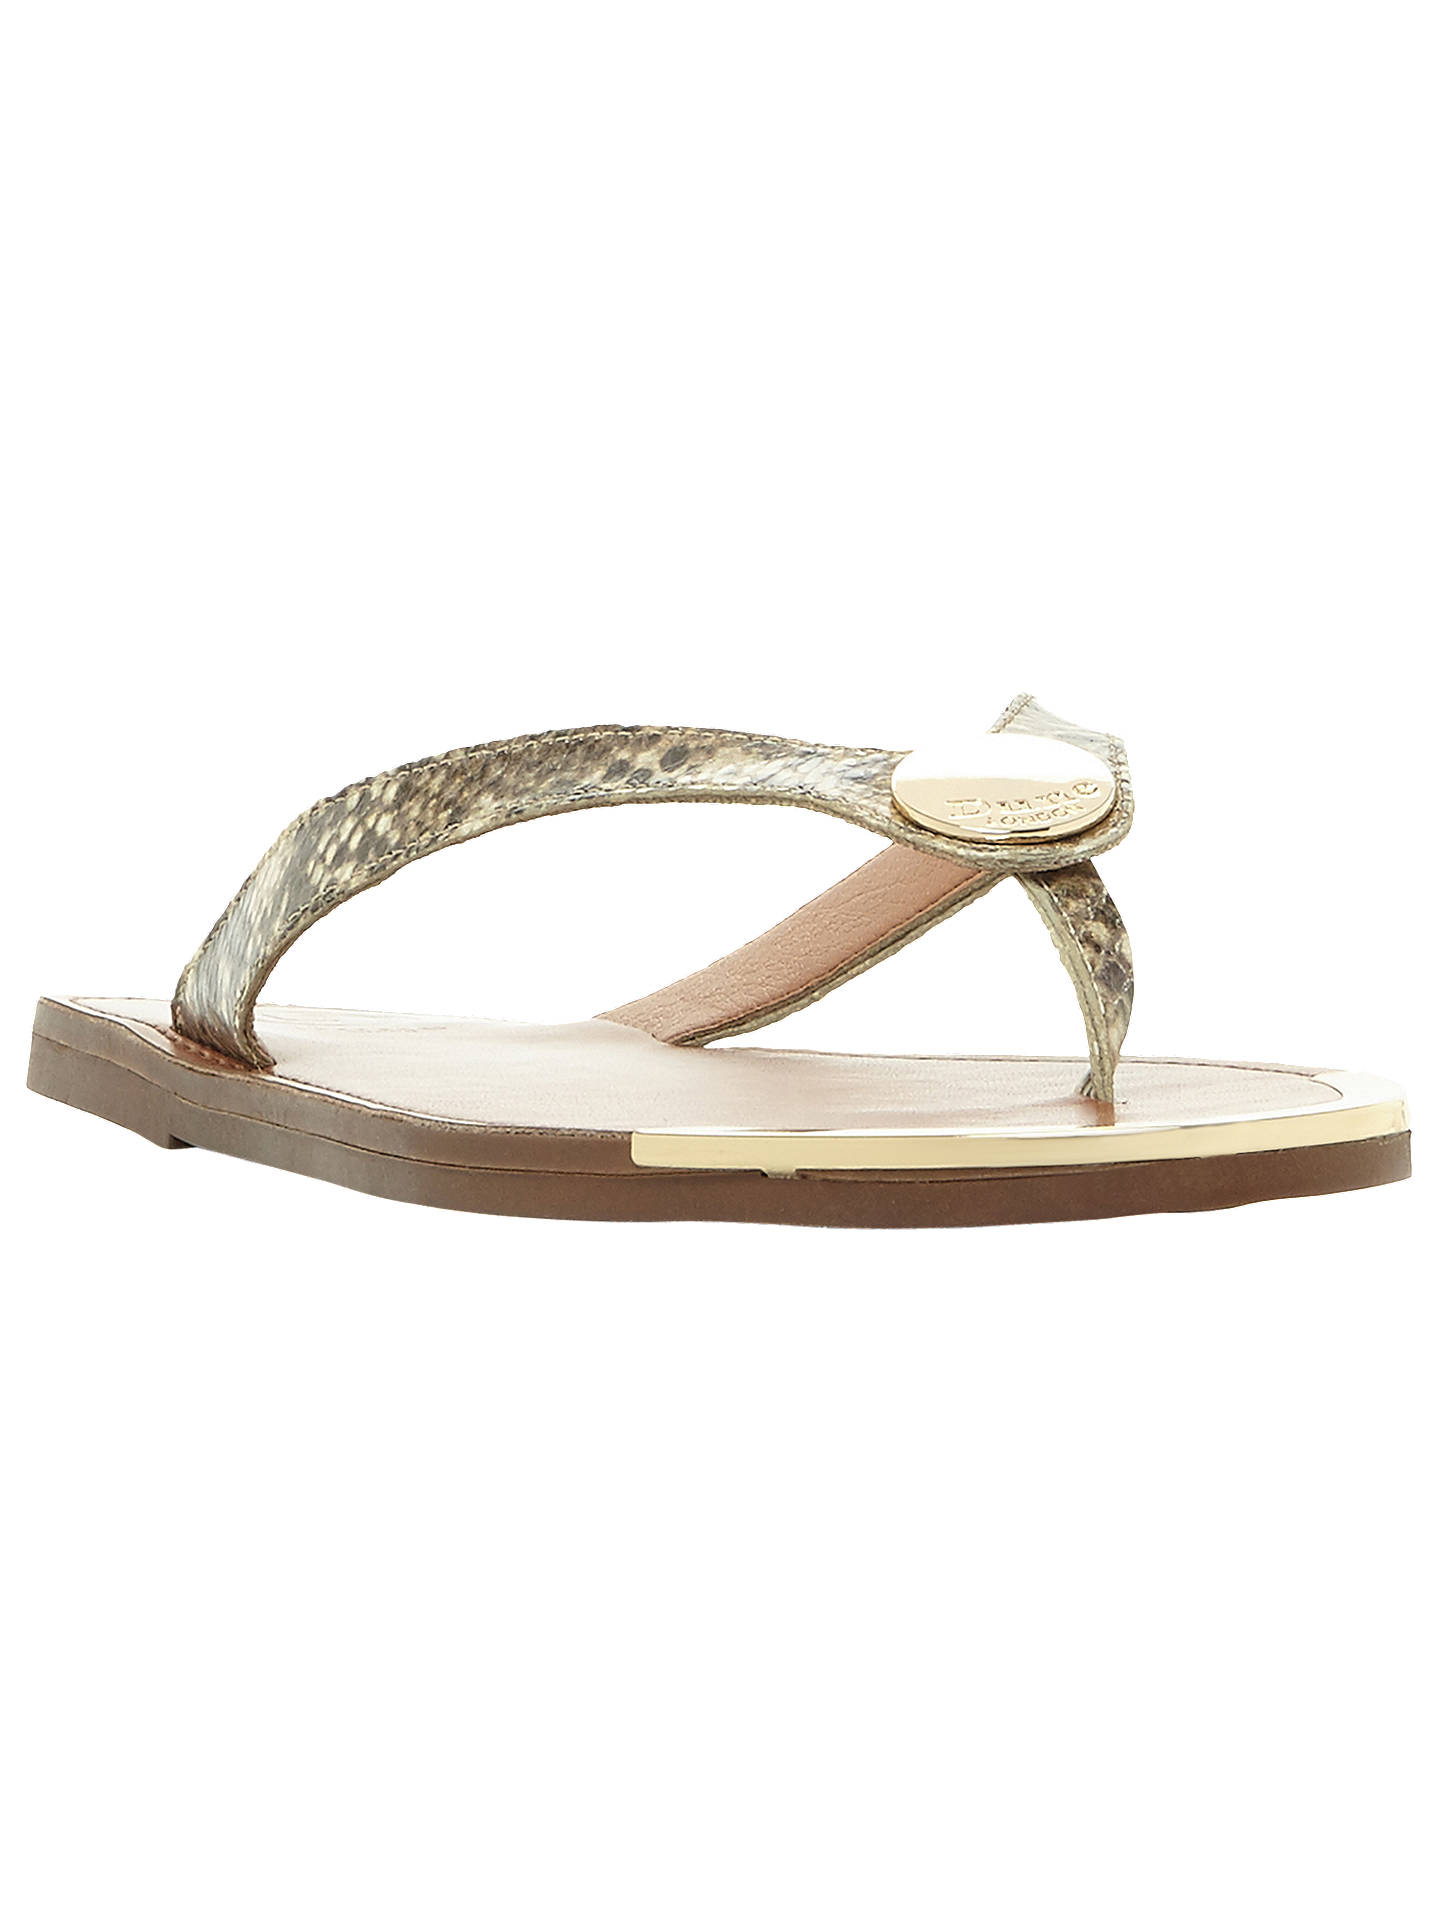 BuyDune Lagos Toe Post Sandals, Brown/Green Leather, 3 Online at johnlewis.com